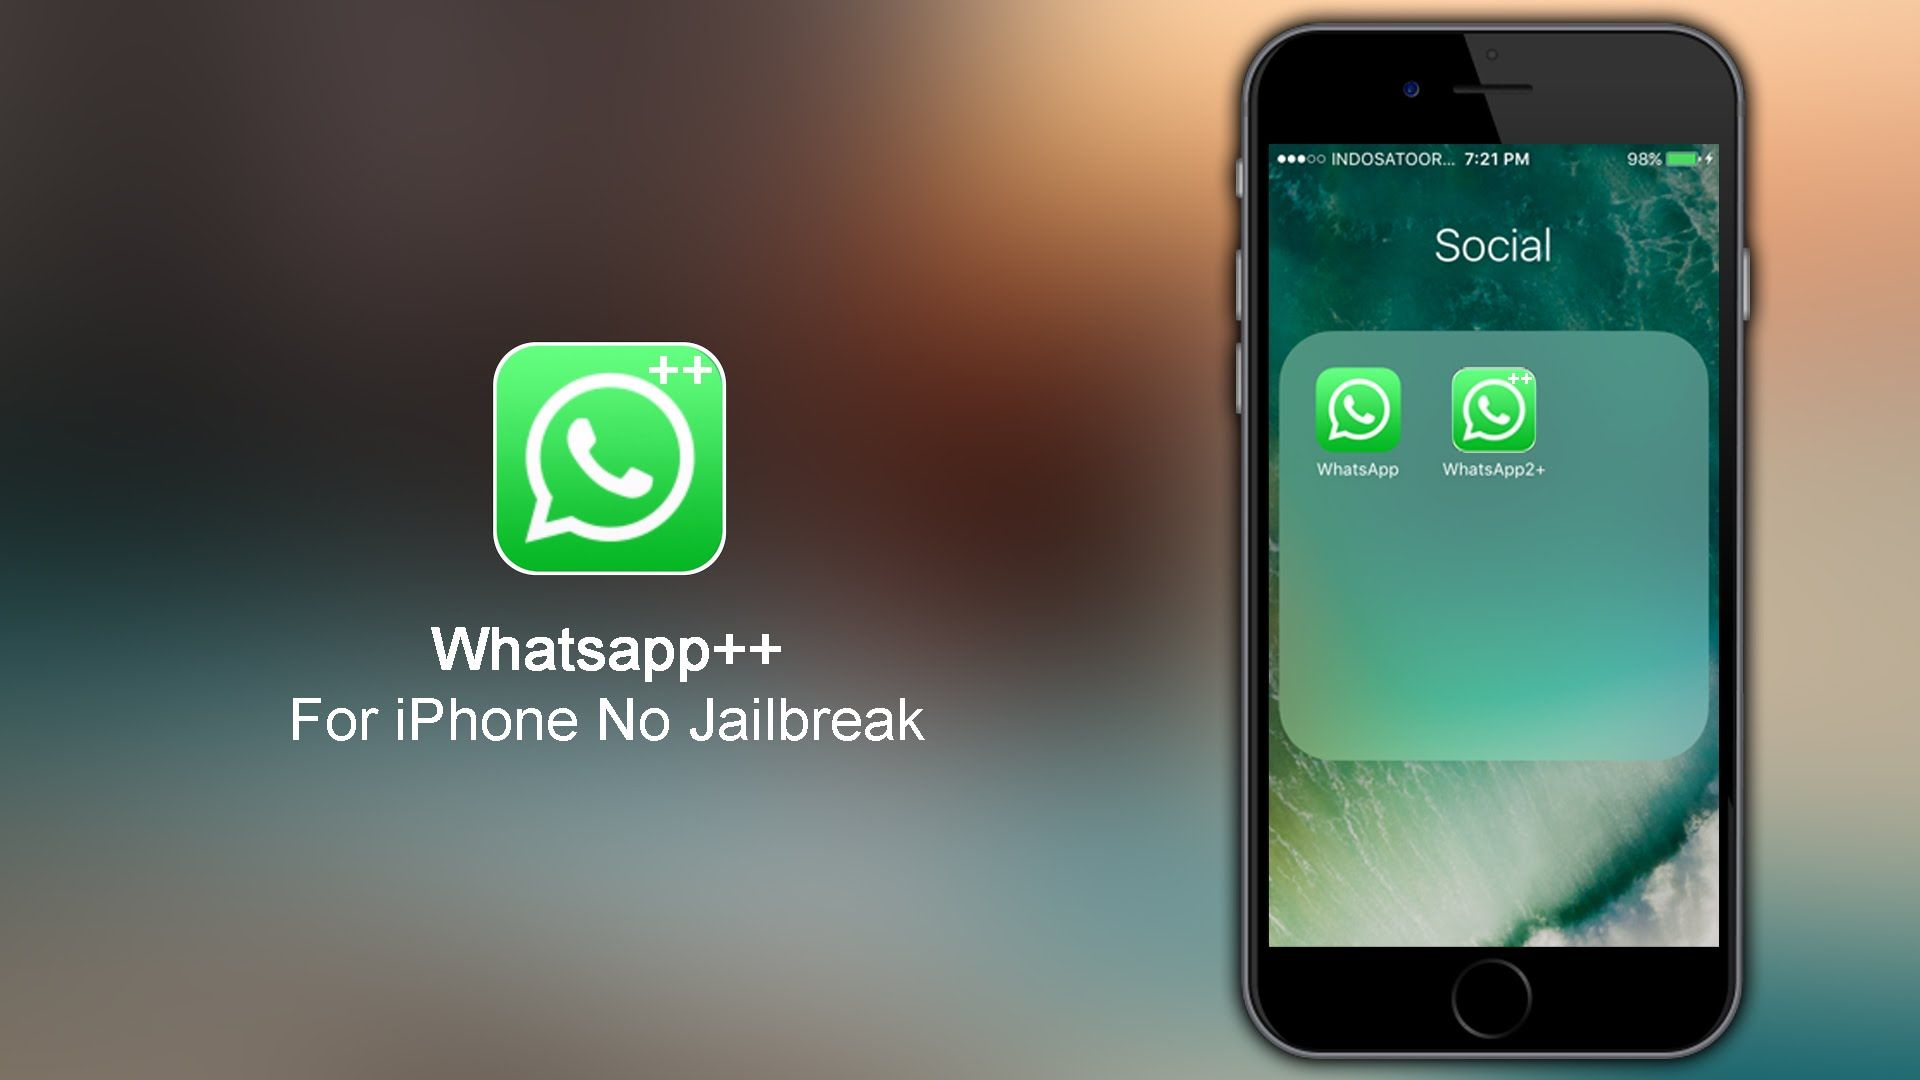 How To Install Whatsapp++ For iPhone iOS 9 3 5 - 10 Without